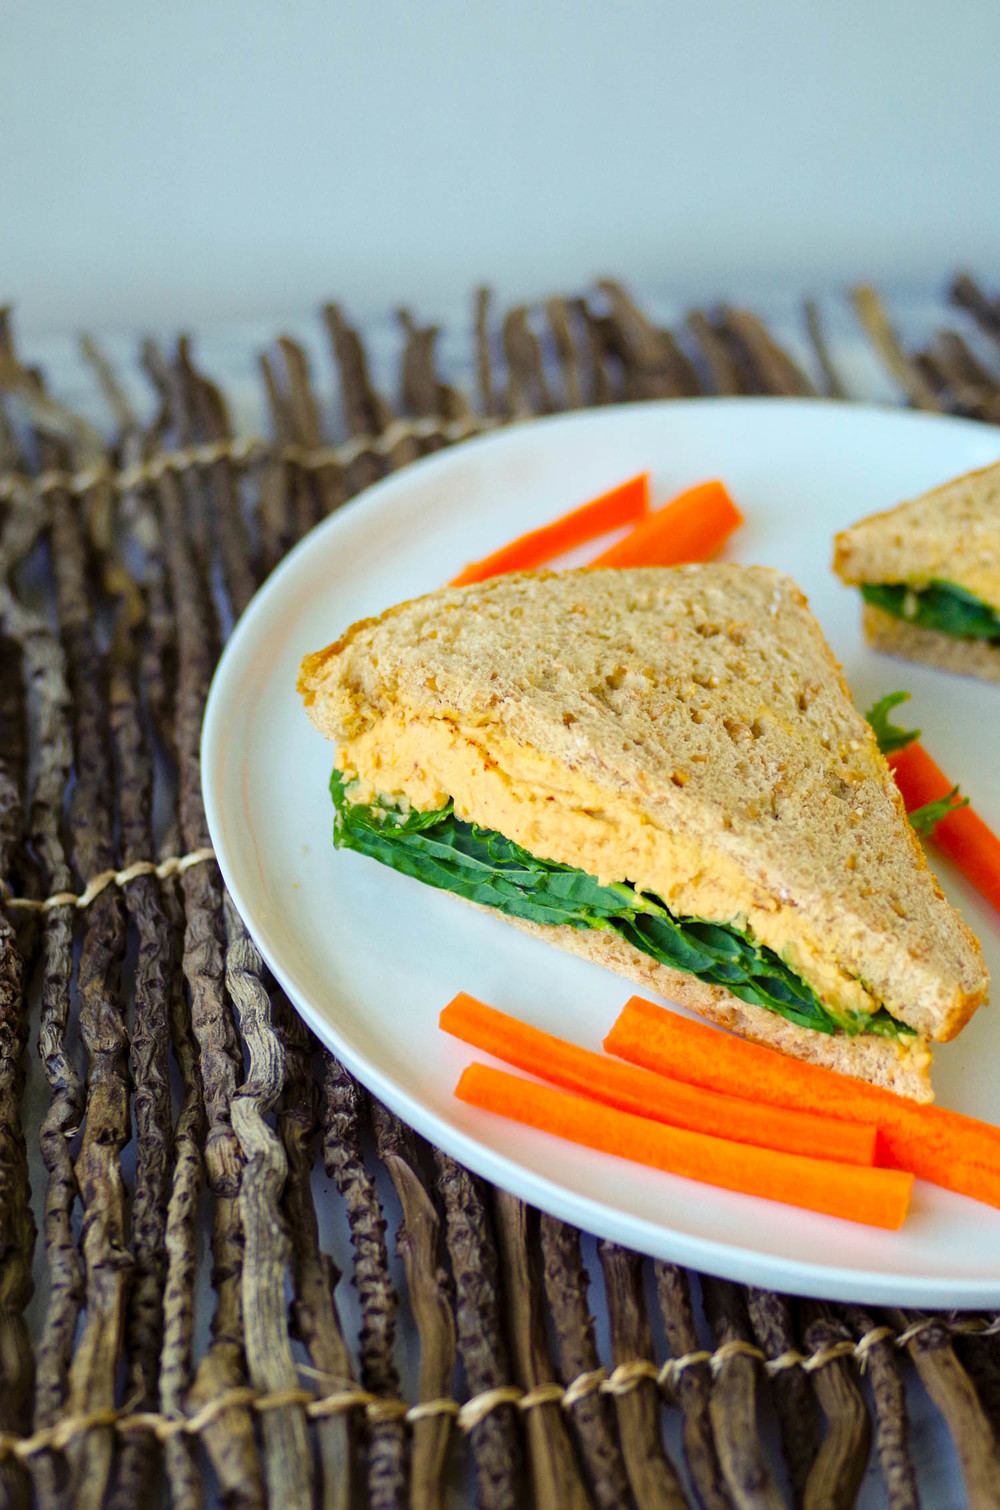 Lemony Hummus makes a great sandwich filling, by Beautiful Ingredient